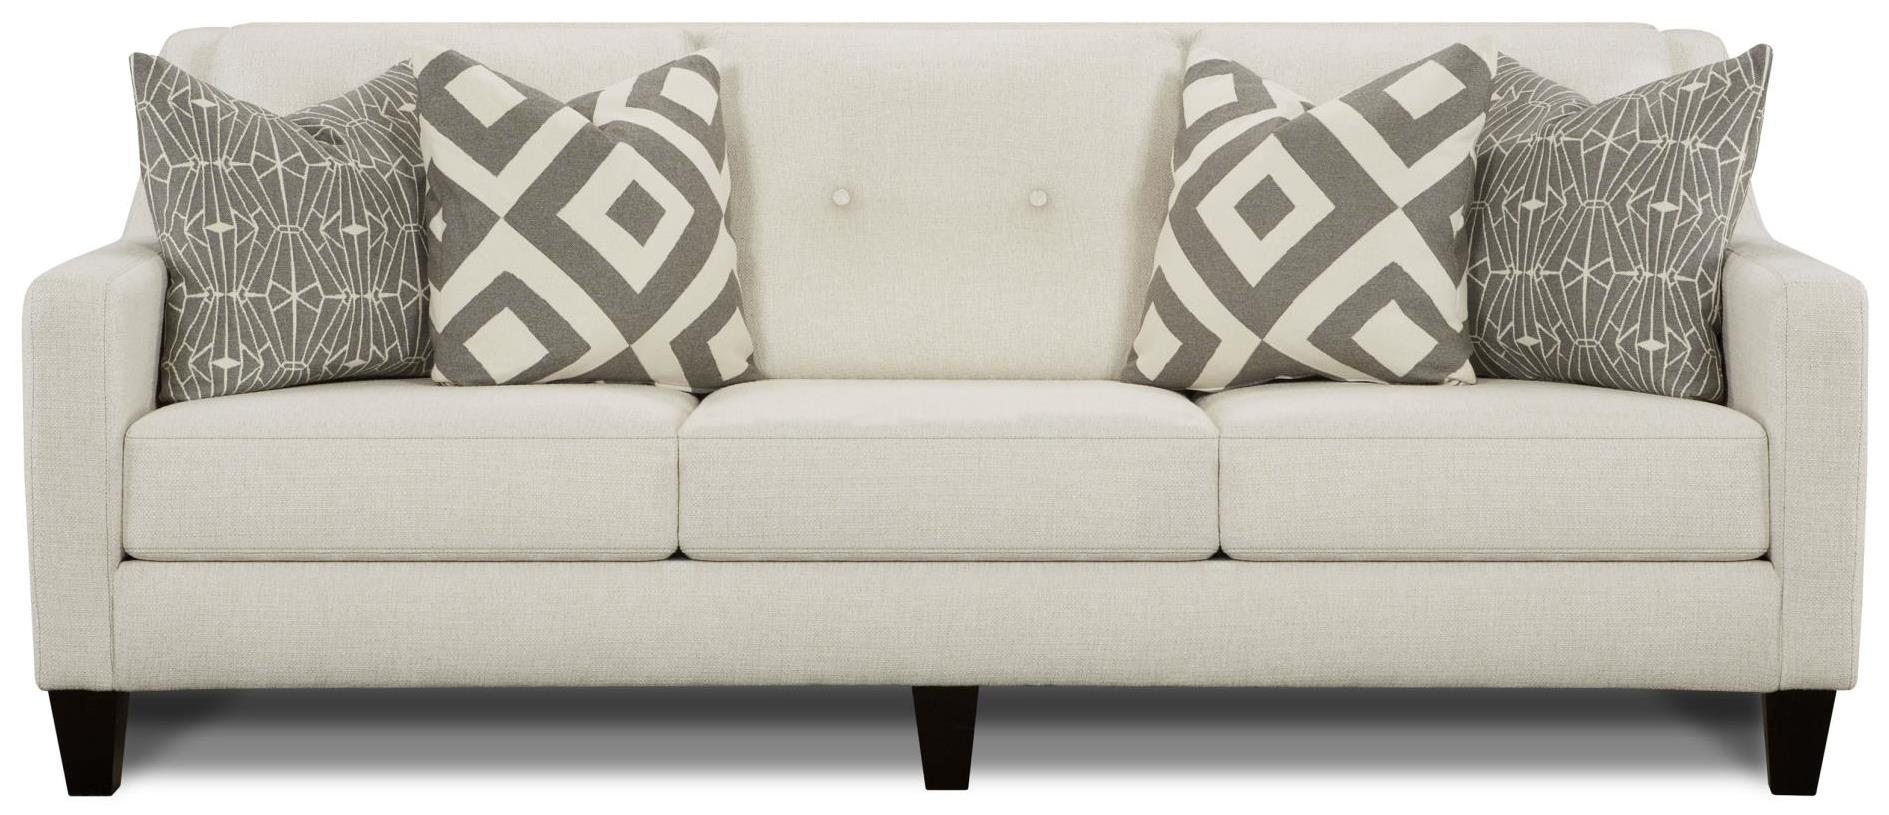 3280 Sofa by Fusion Furniture at Furniture Superstore - Rochester, MN